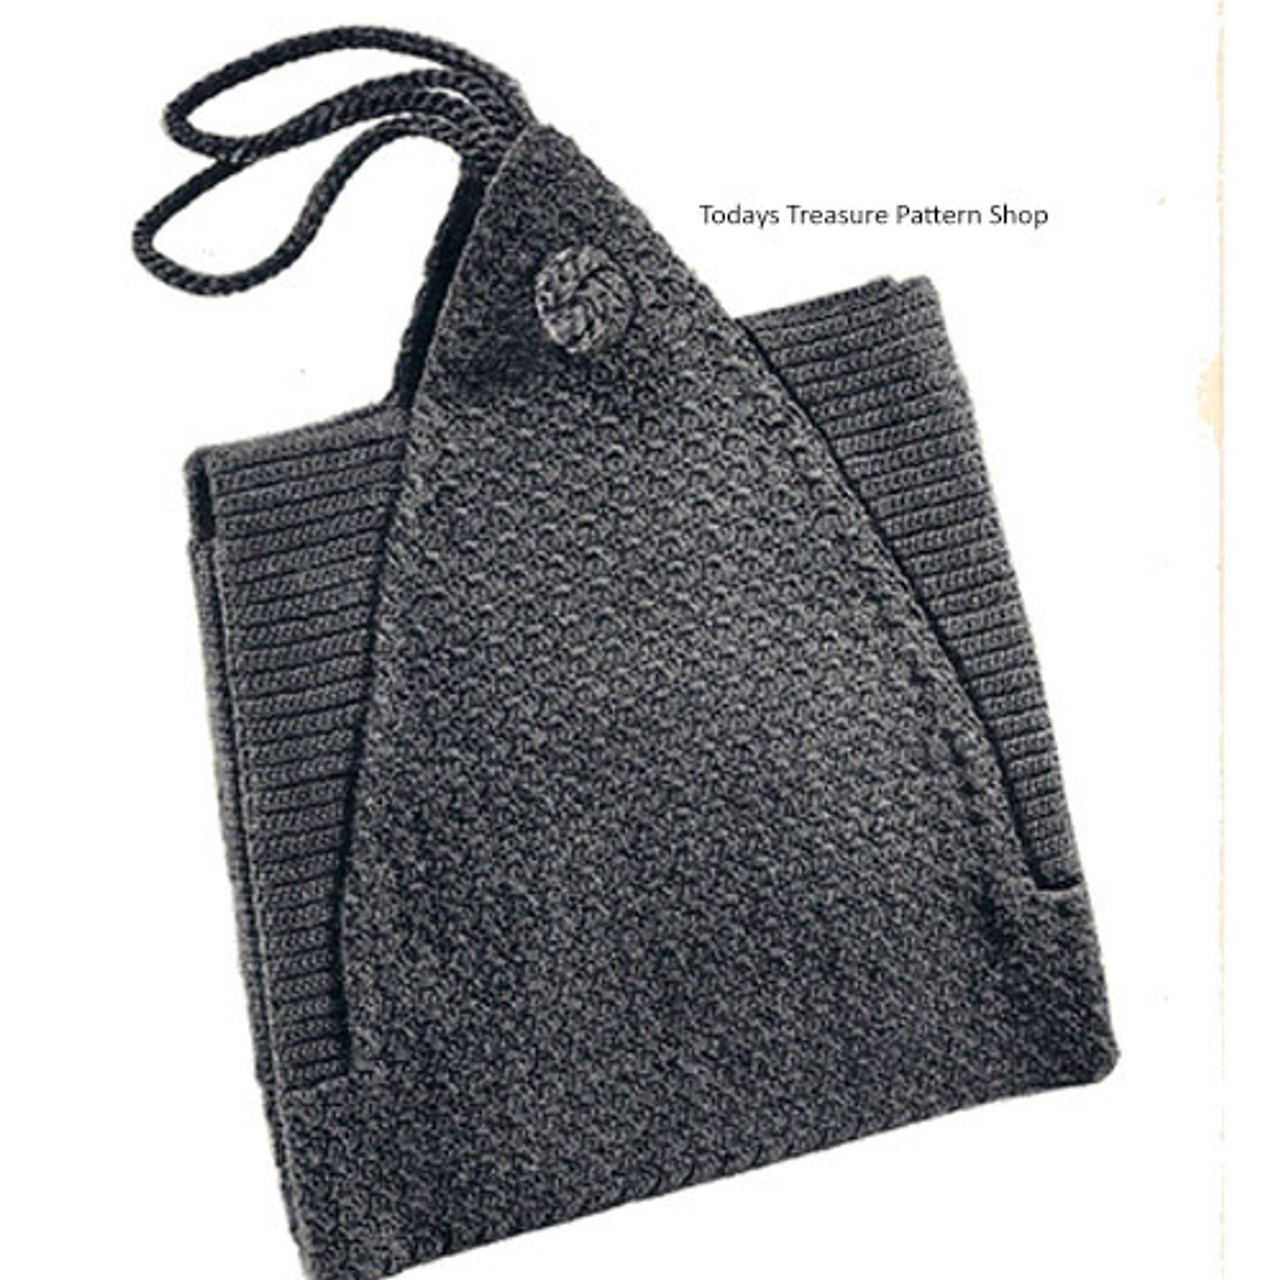 Square Crochet Envelope Bag Pattern, Vintage 1930s